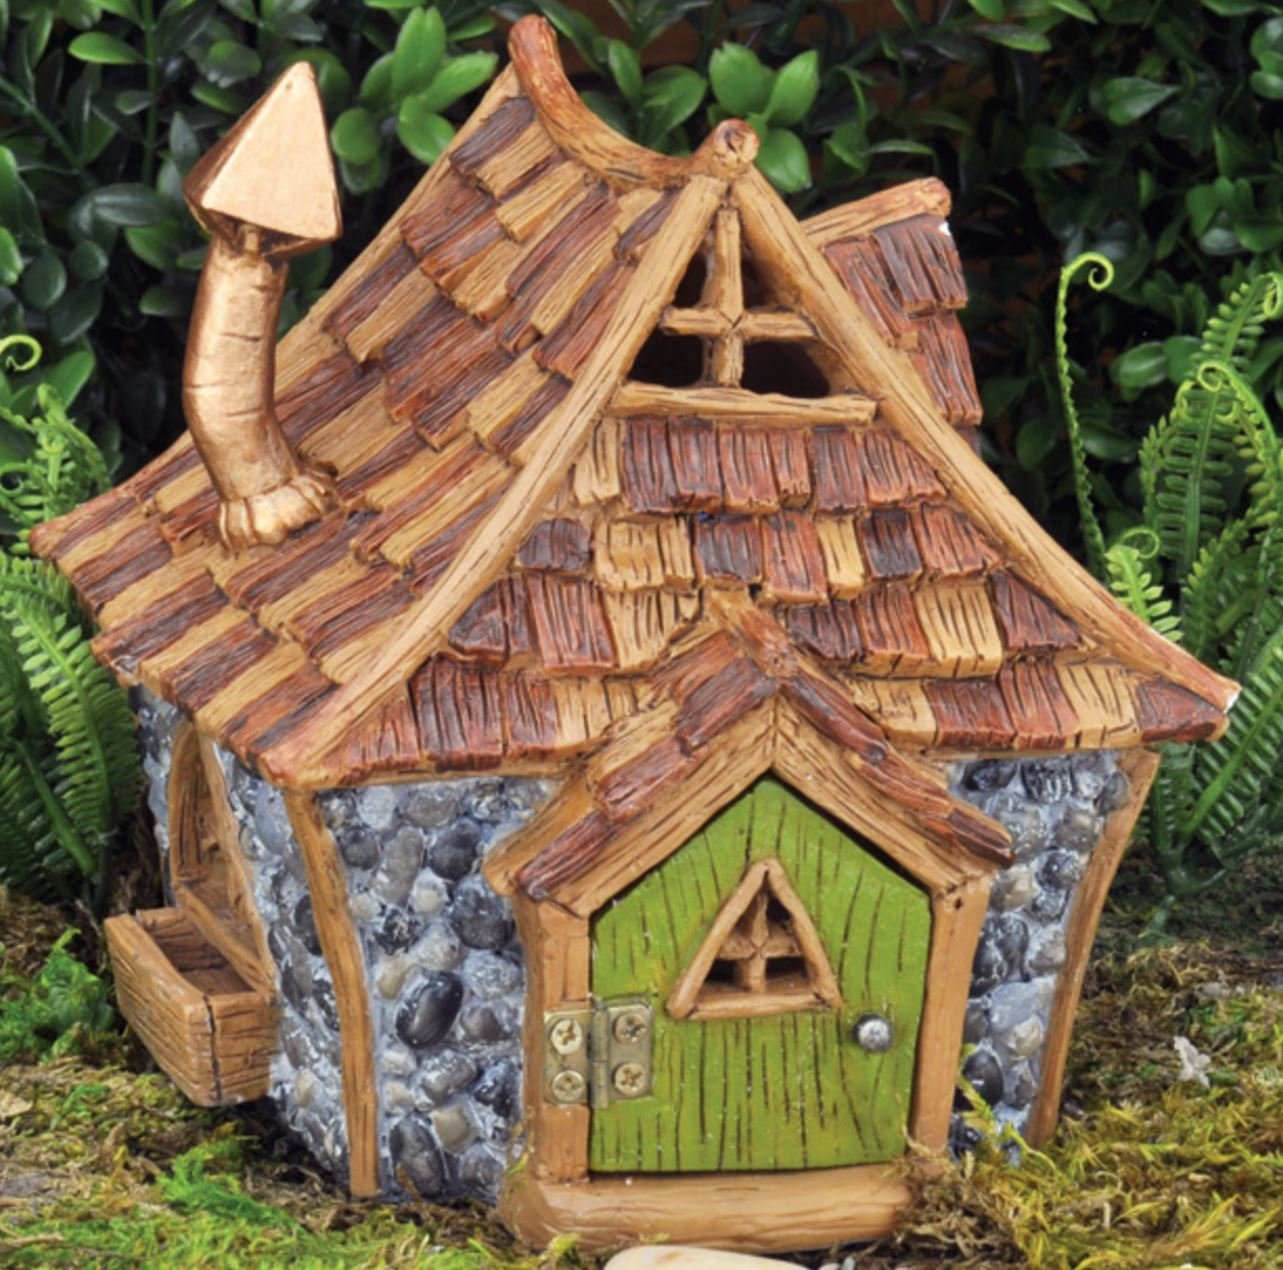 Fiddlehead Fairy Garden Shingletown Cottage House with Door That Opens and Closes